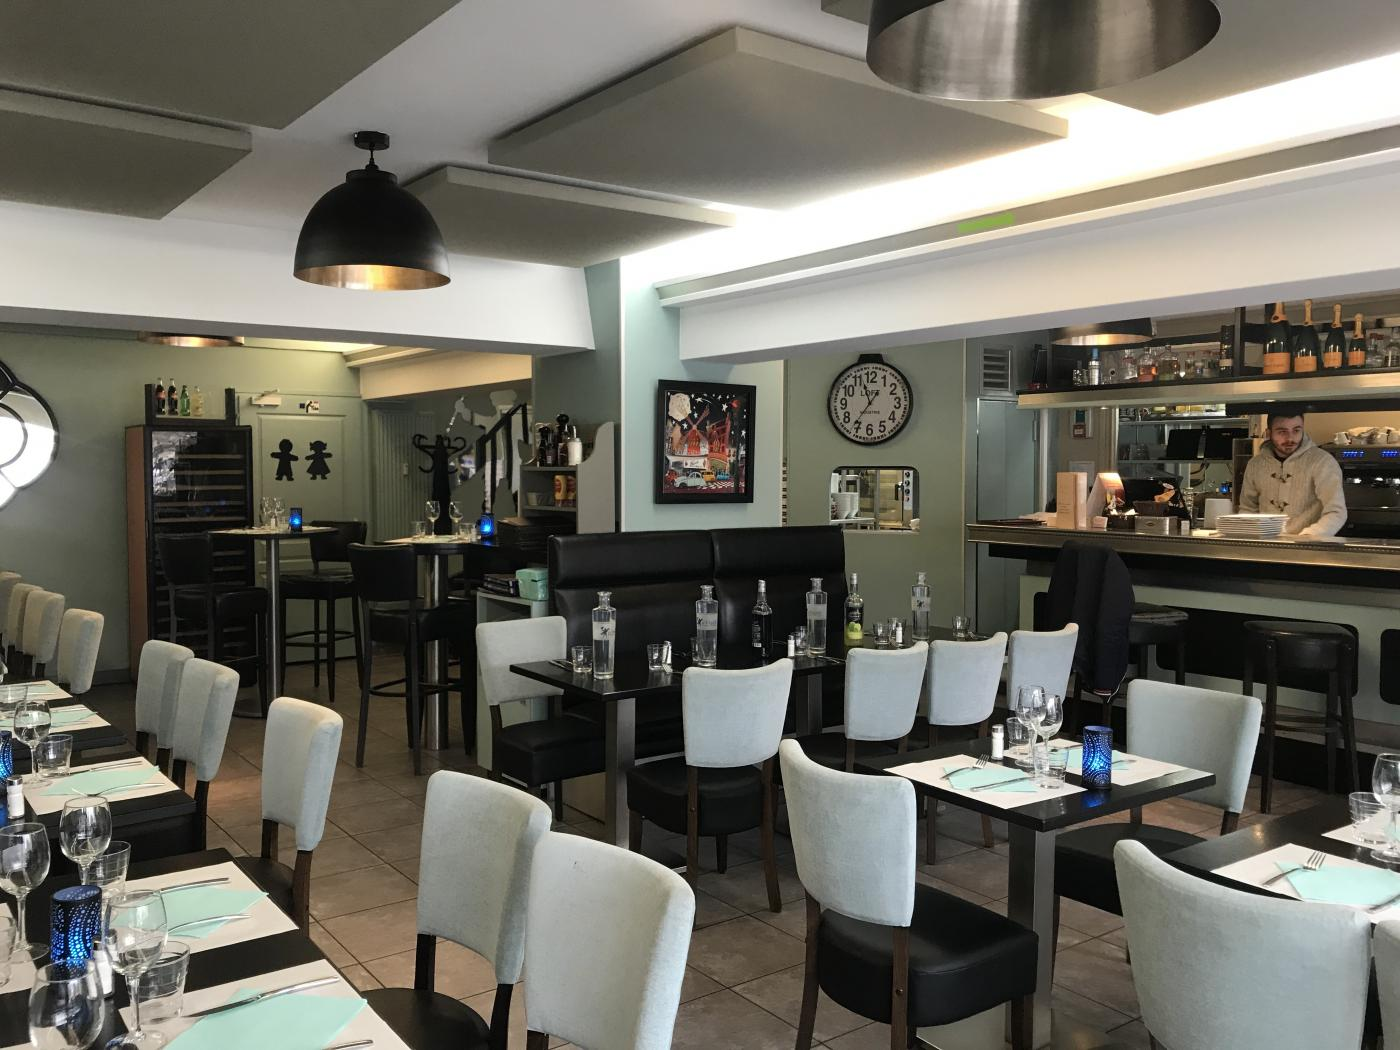 Restaurant le scoop le touquet paris plage 20 for Restaurant le jardin au touquet